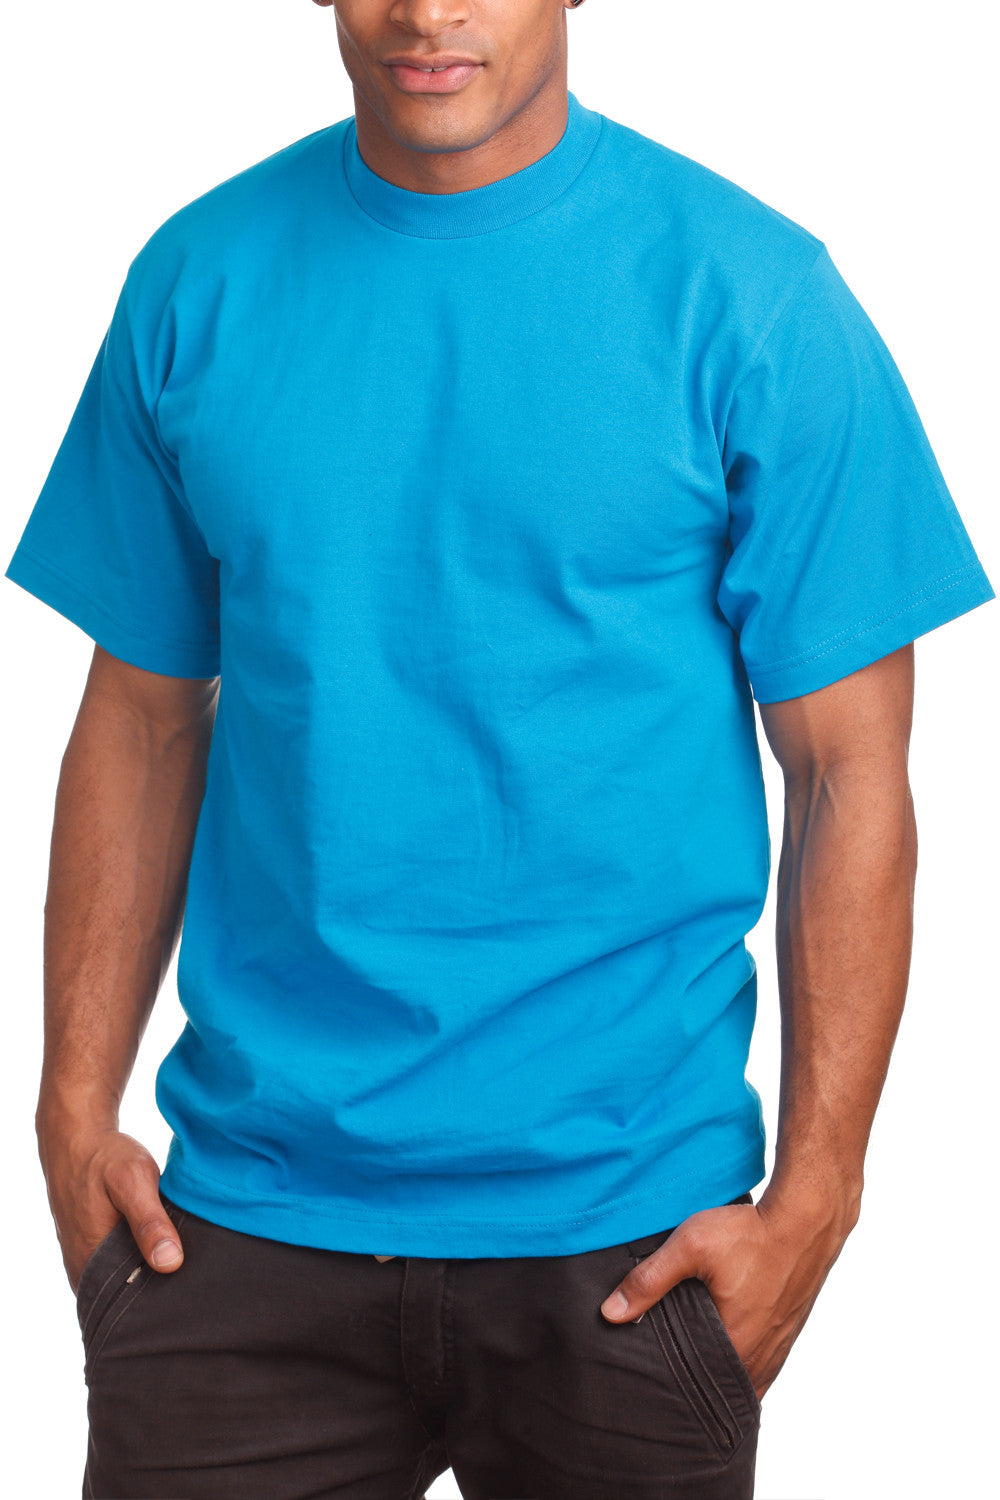 Mens Super Heavy T-Shirt Tee Shirts Tall Size Turquoise